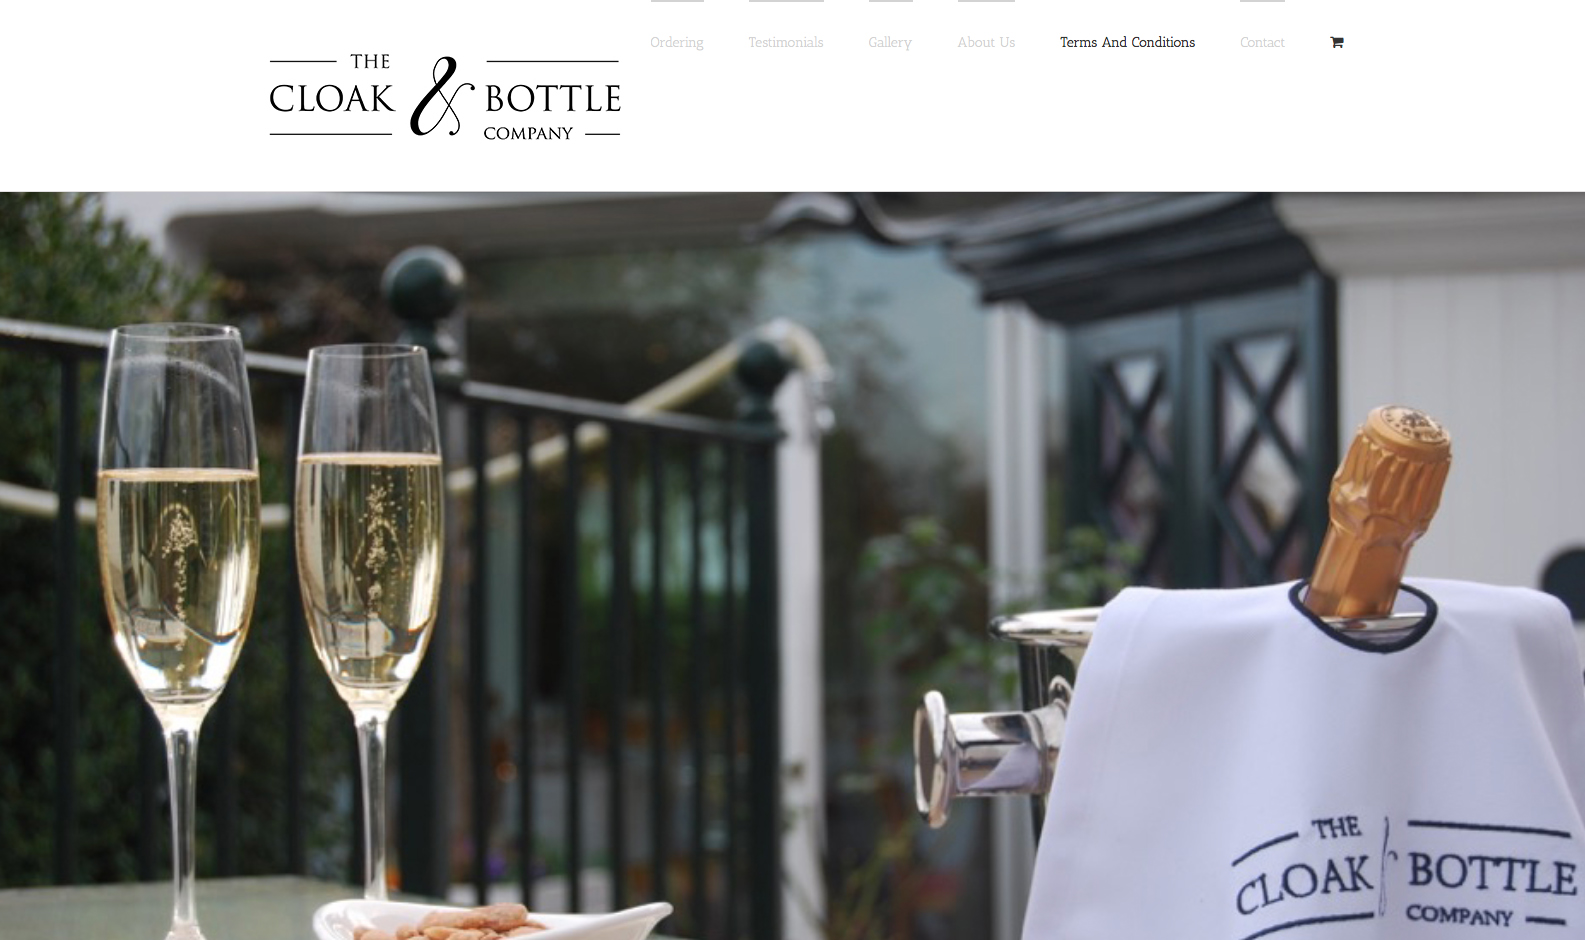 The Cloak And Bottle Company - one page